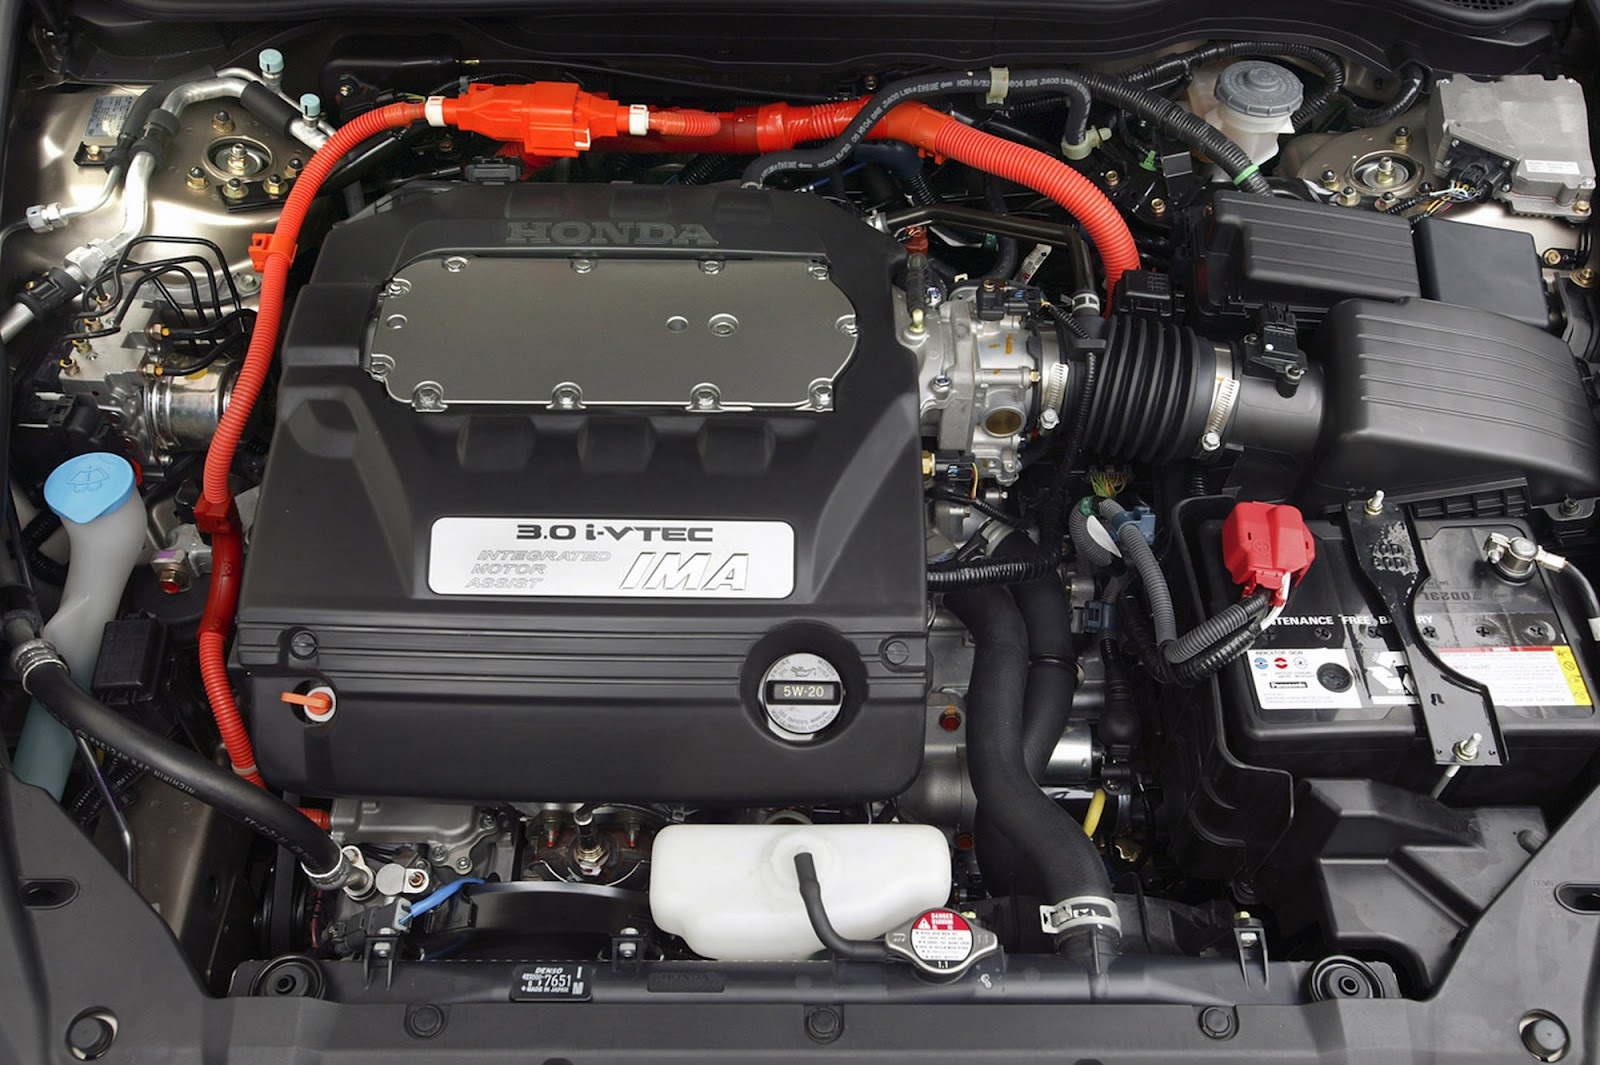 Accord Hybrid Engine Diagram 2012 Ford Mustang My View On Cars And Accessories Technology Develops As The Rh Wheelzoo Blogspot Com Mclarendiagram